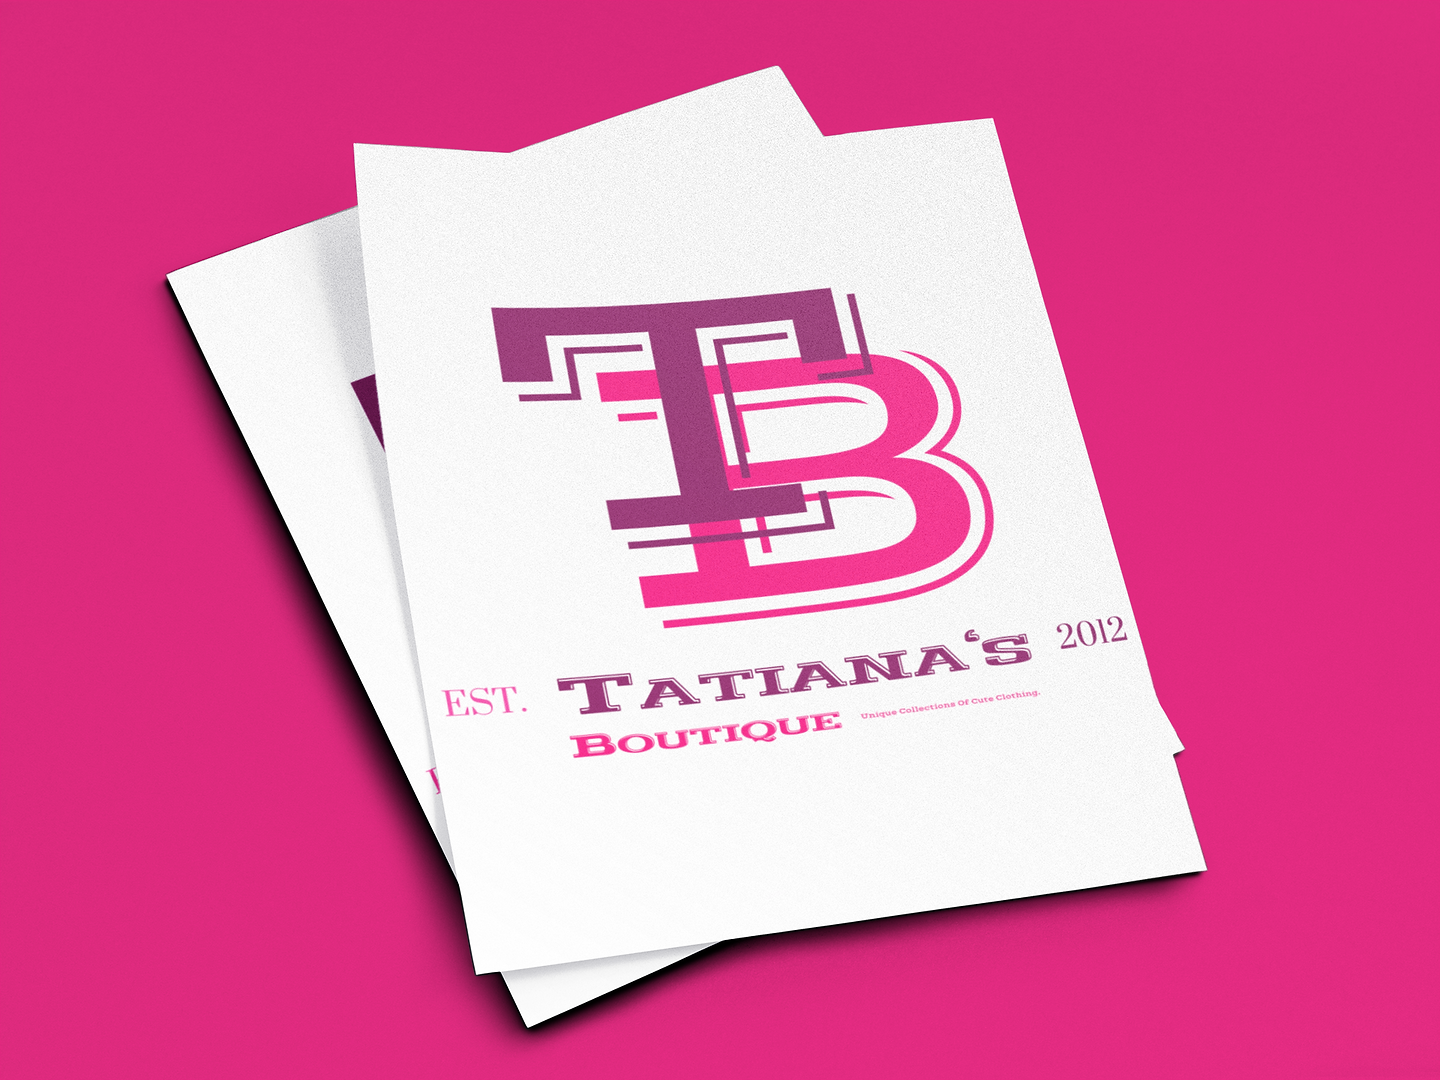 Tatiana's Boutique.